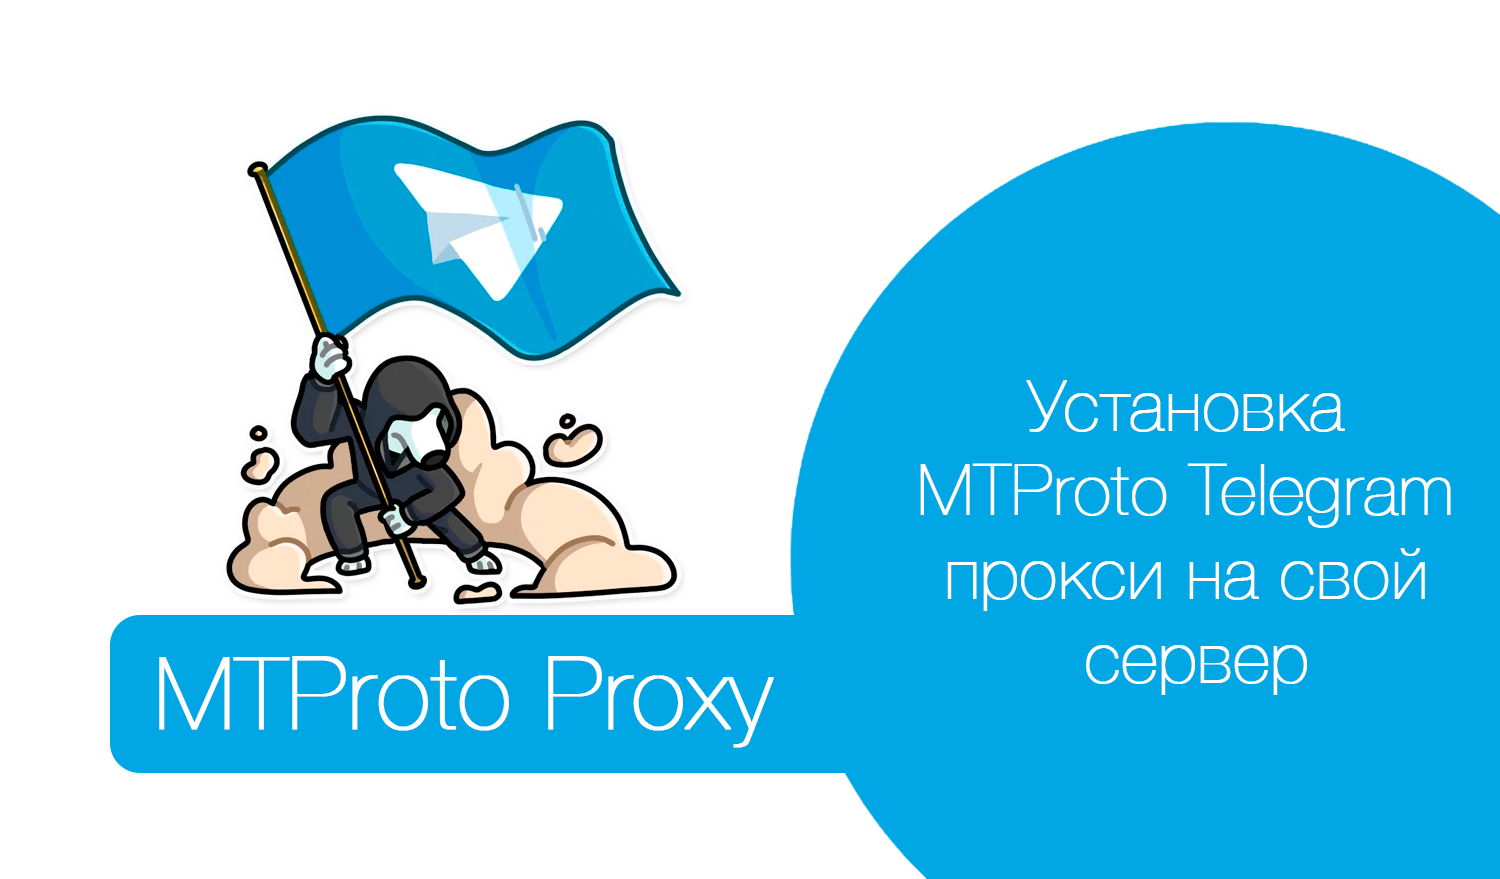 MTProxy Telegram» — как установить? - Leon Ishimov - Medium